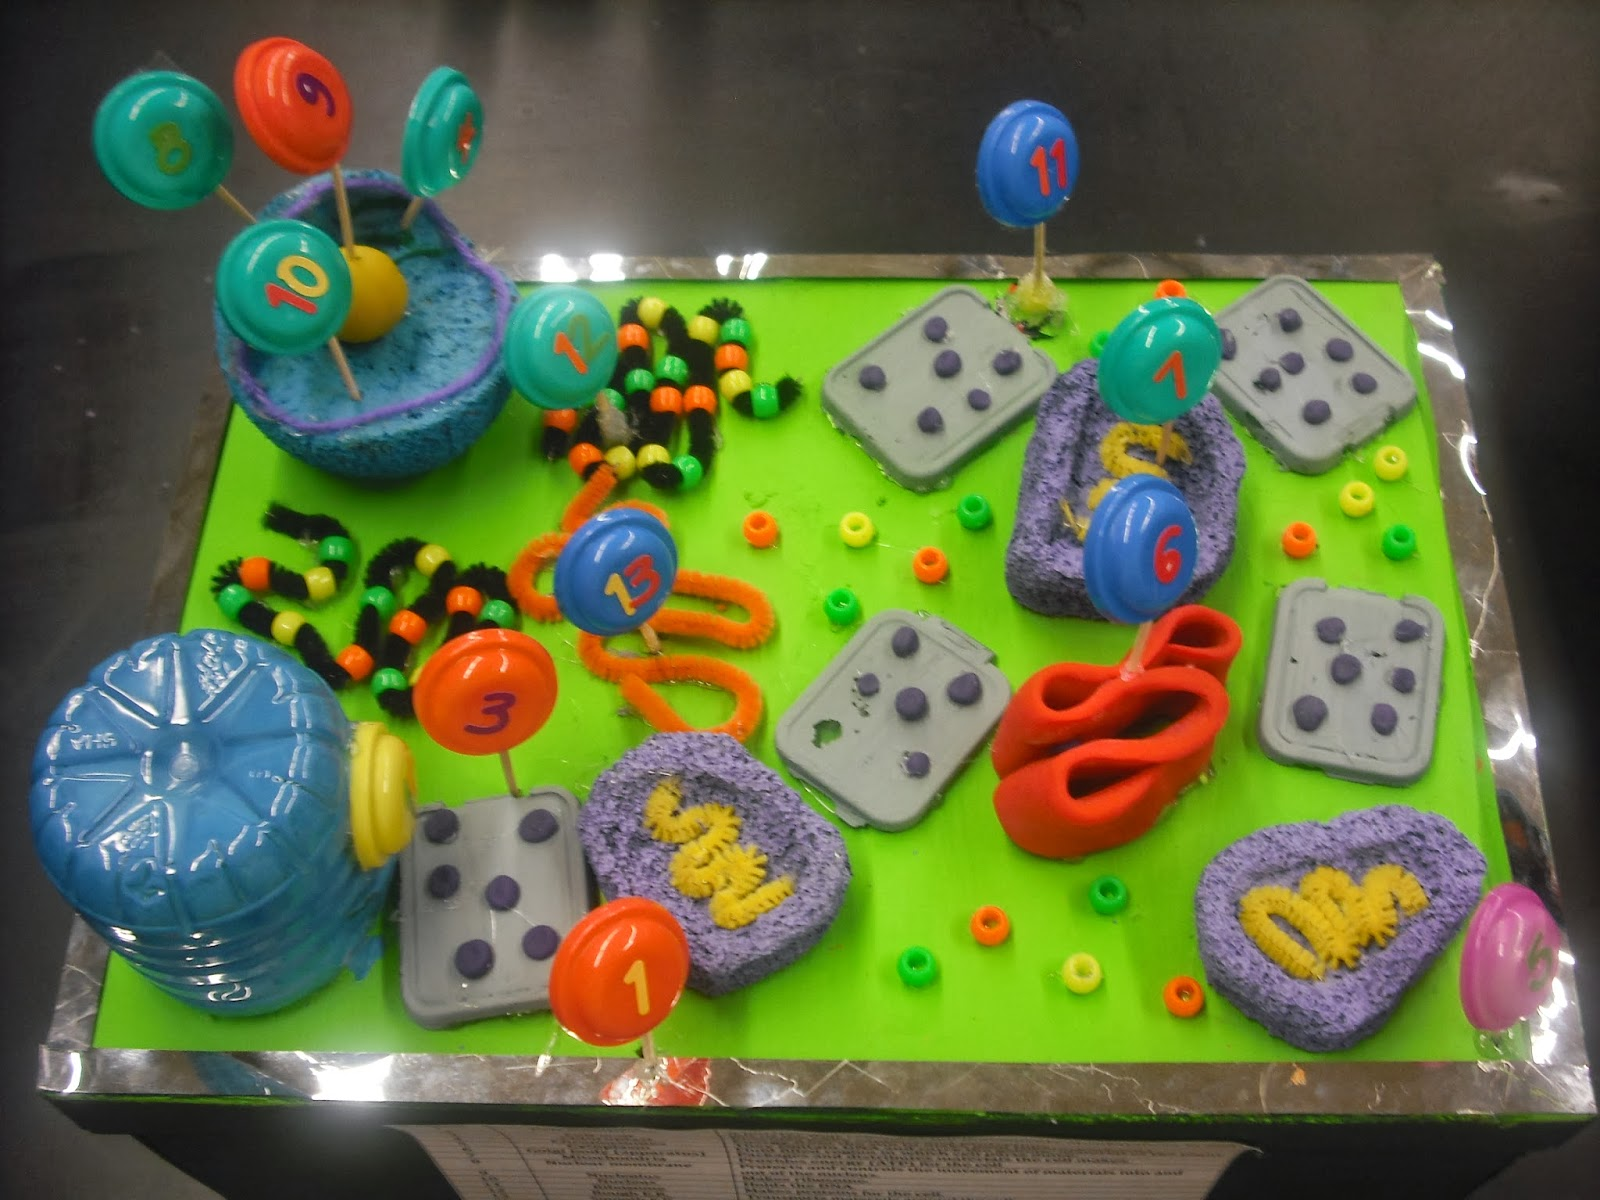 Magnificent ideas for plant cell model ideas garden and pretty plant and animal cell model ideas pictures inspiration pooptronica Images